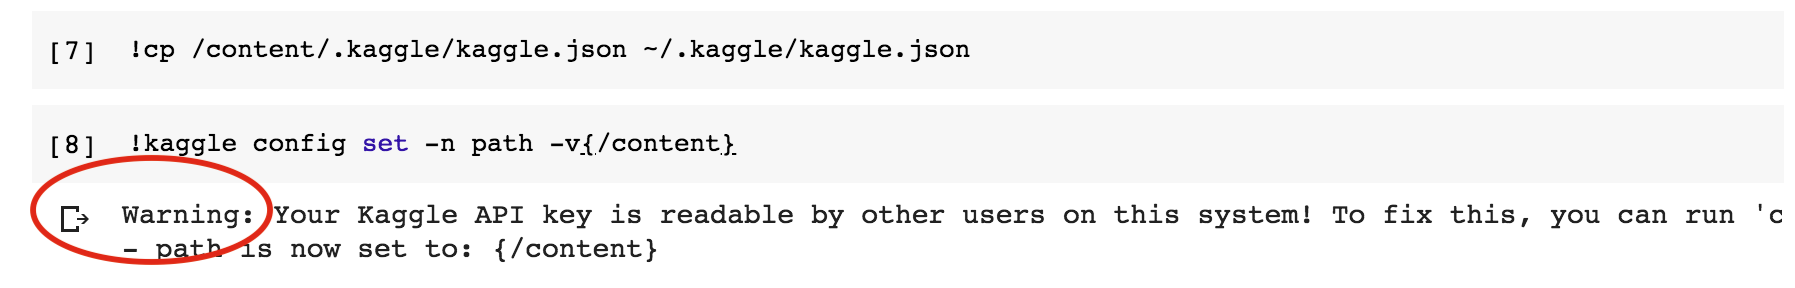 Setting Up Kaggle in Google Colab - Towards Data Science